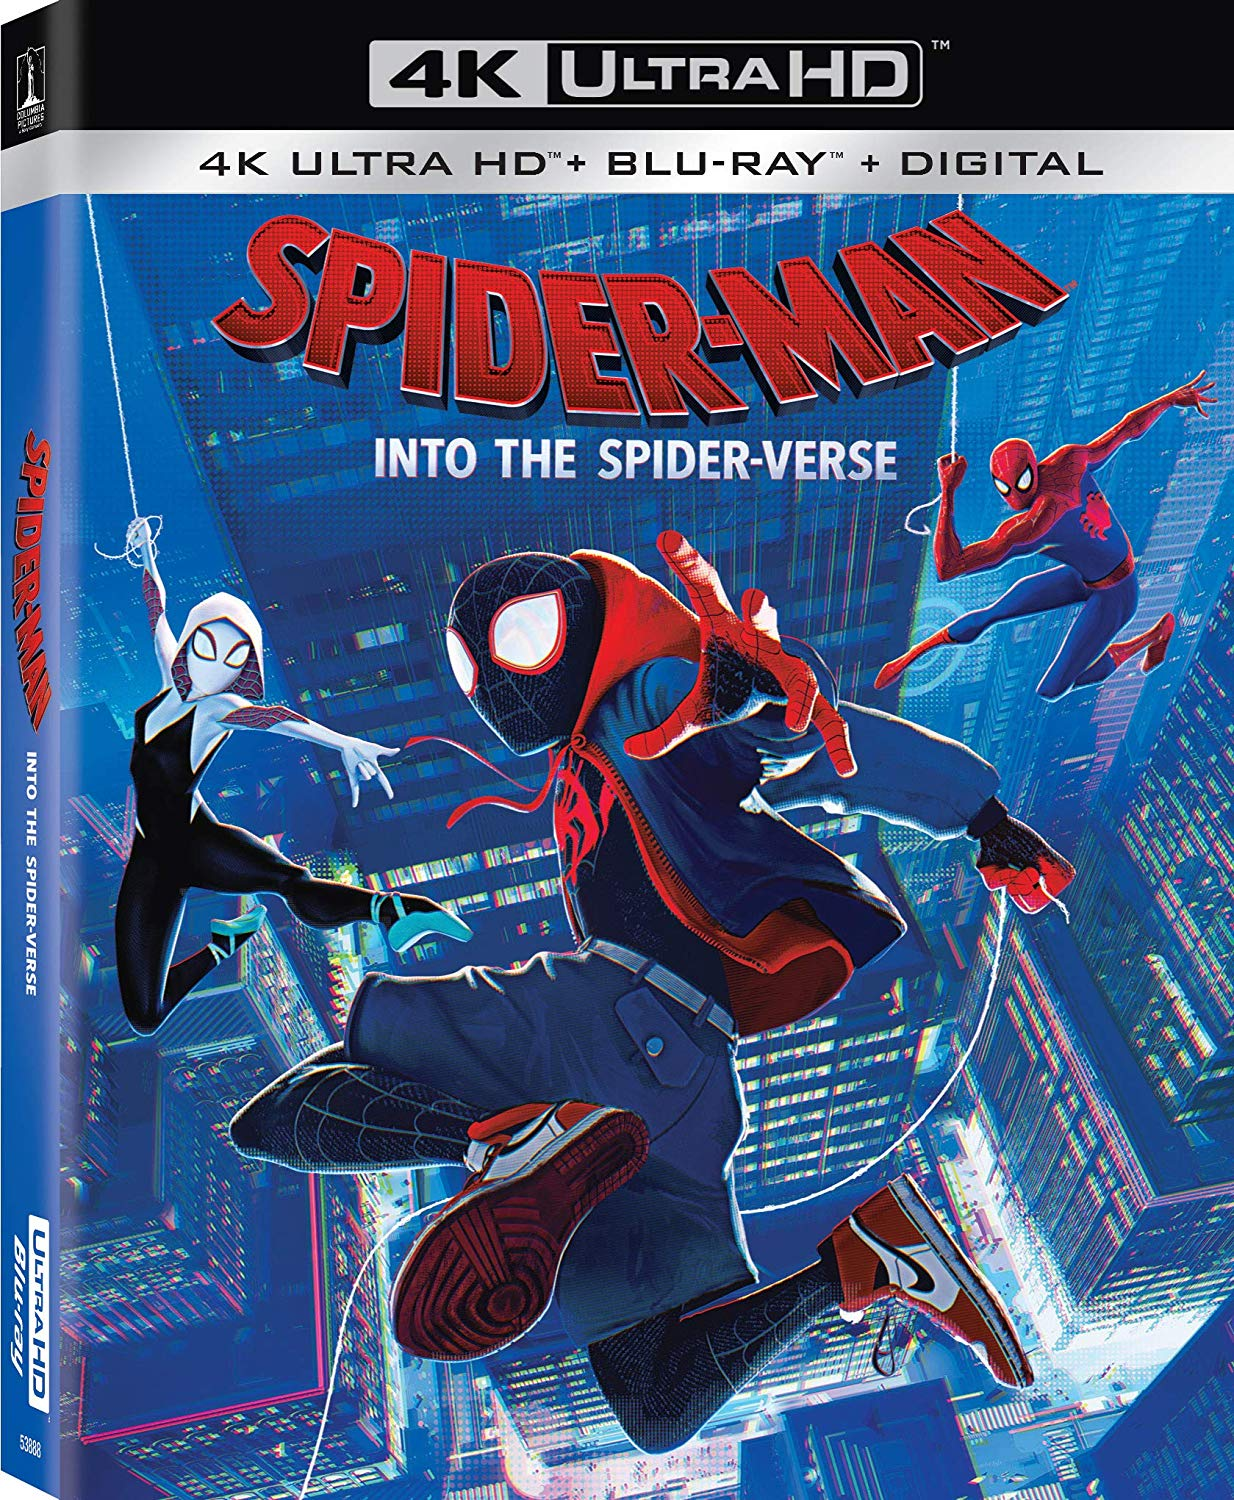 Spider Man Into the Spider Verse Movie Poster High Quality Prints B2